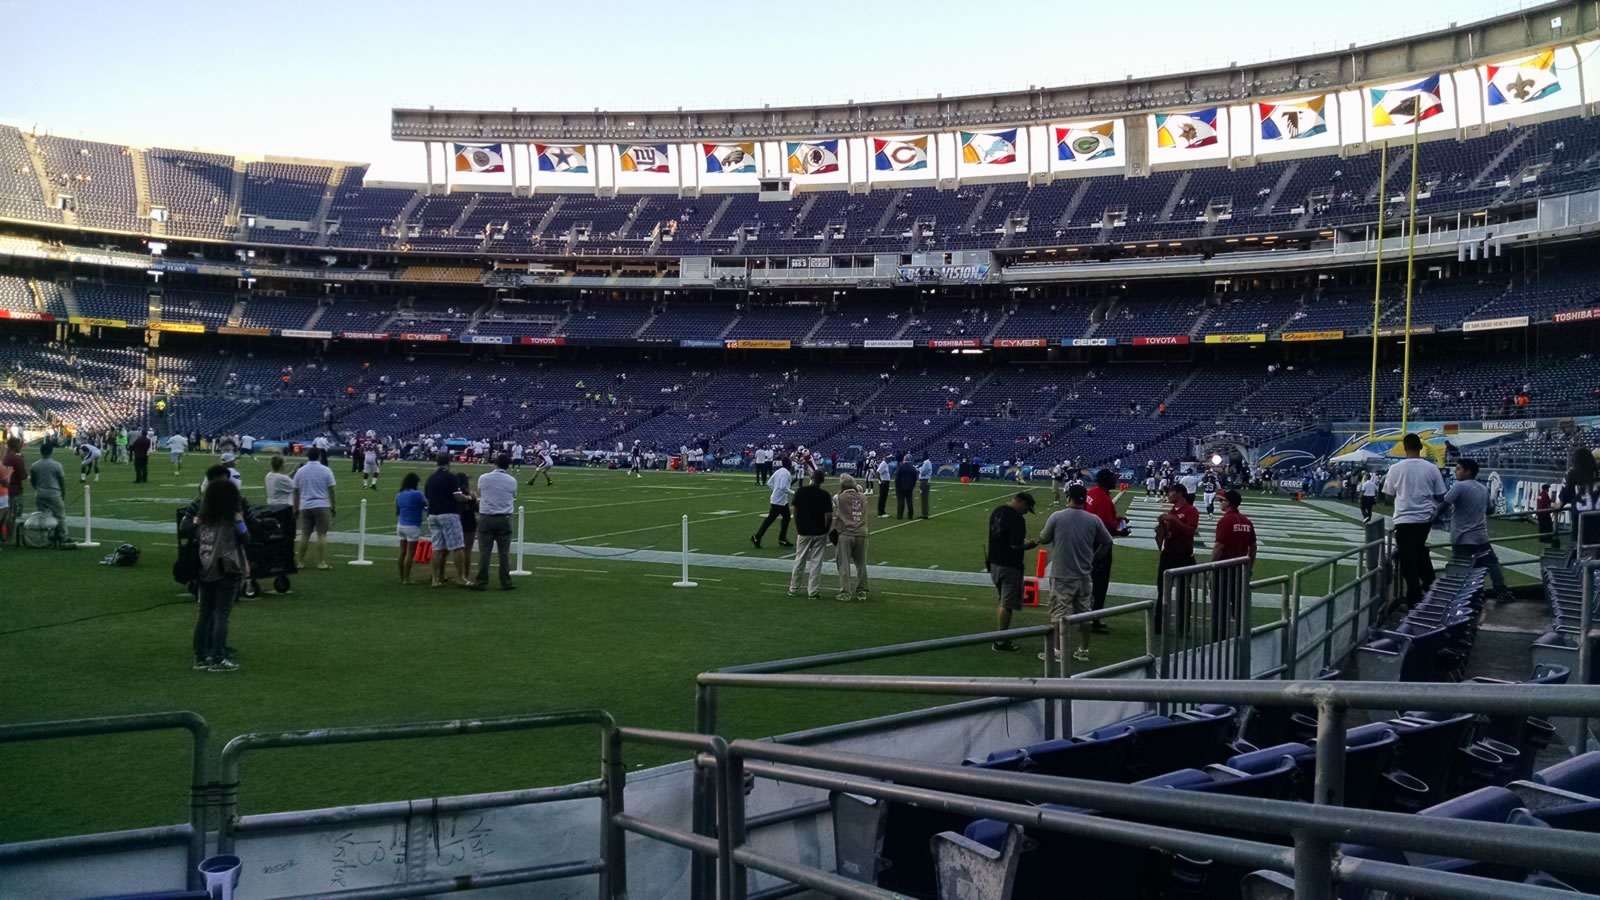 Seat View for SDCCU Stadium Field 11, Row 5, Seat 8